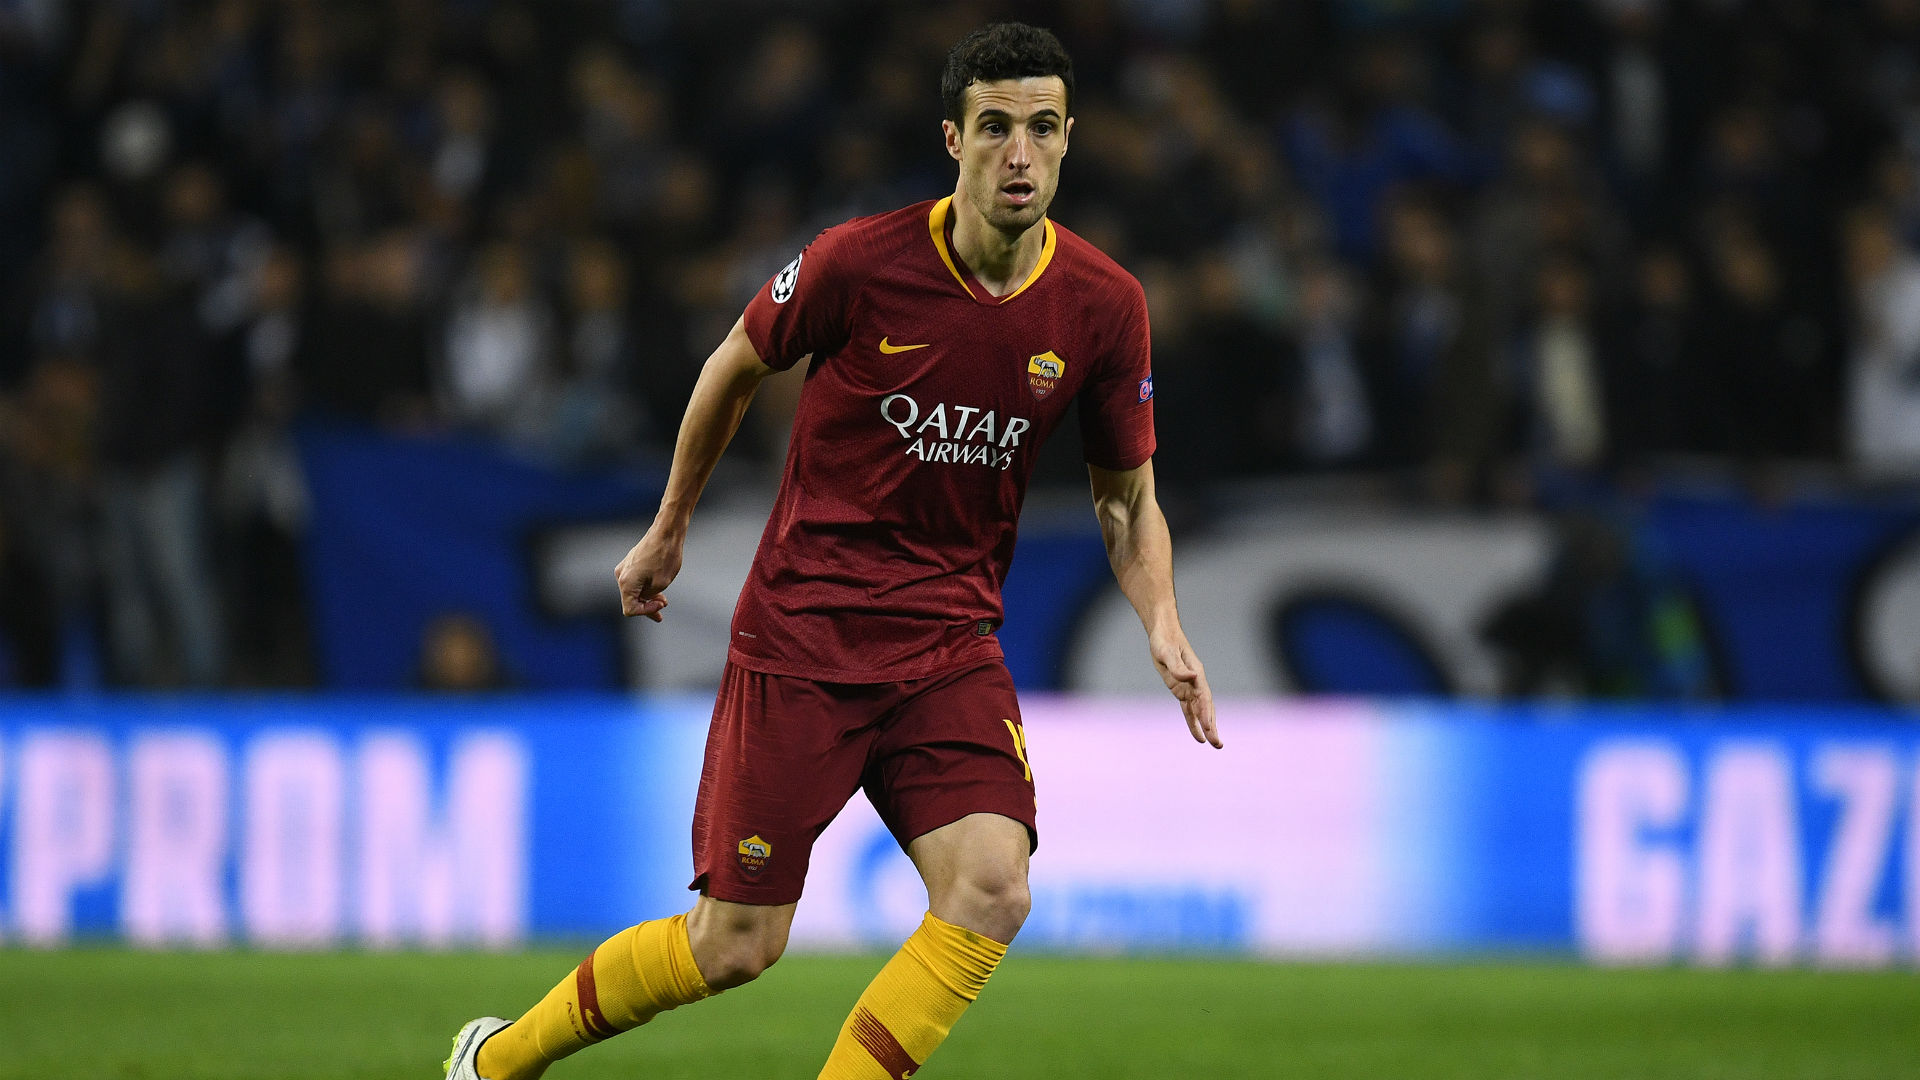 Porto re-sign defender Marcano from Roma